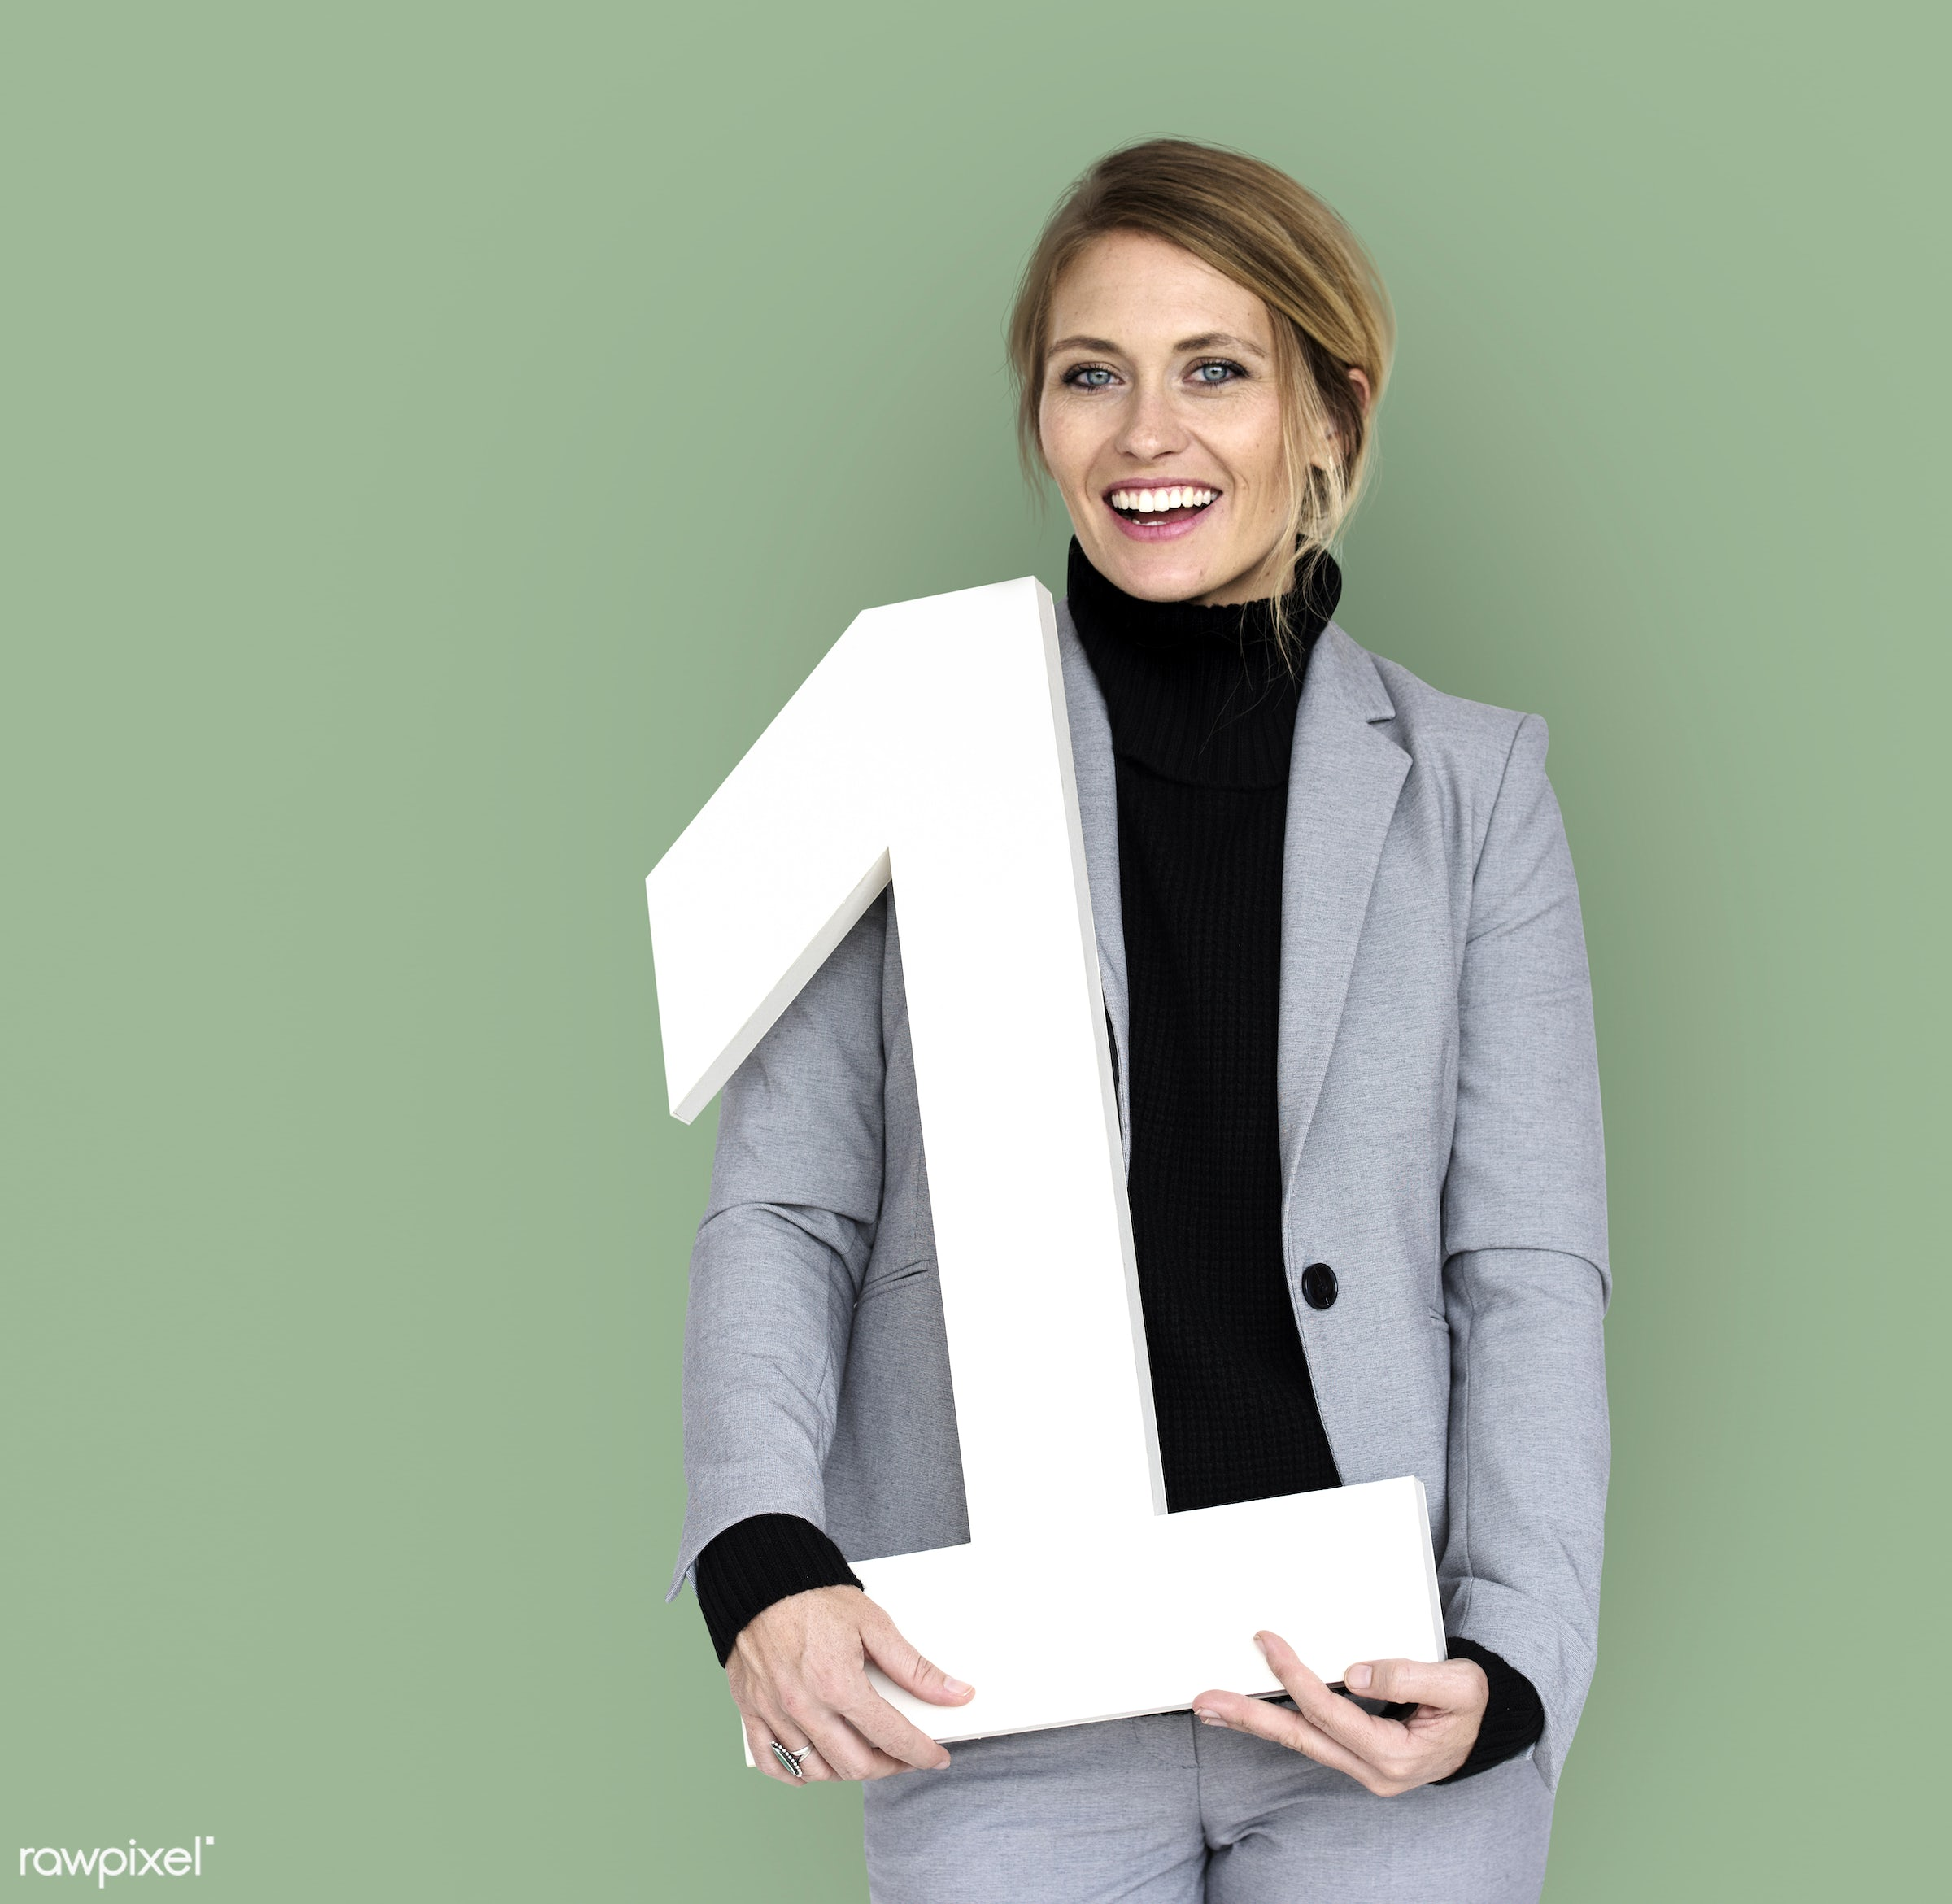 expression, studio, person, business wear, joy, achieve, people, caucasian, rank, girl, joyous, woman, happy, smile,...